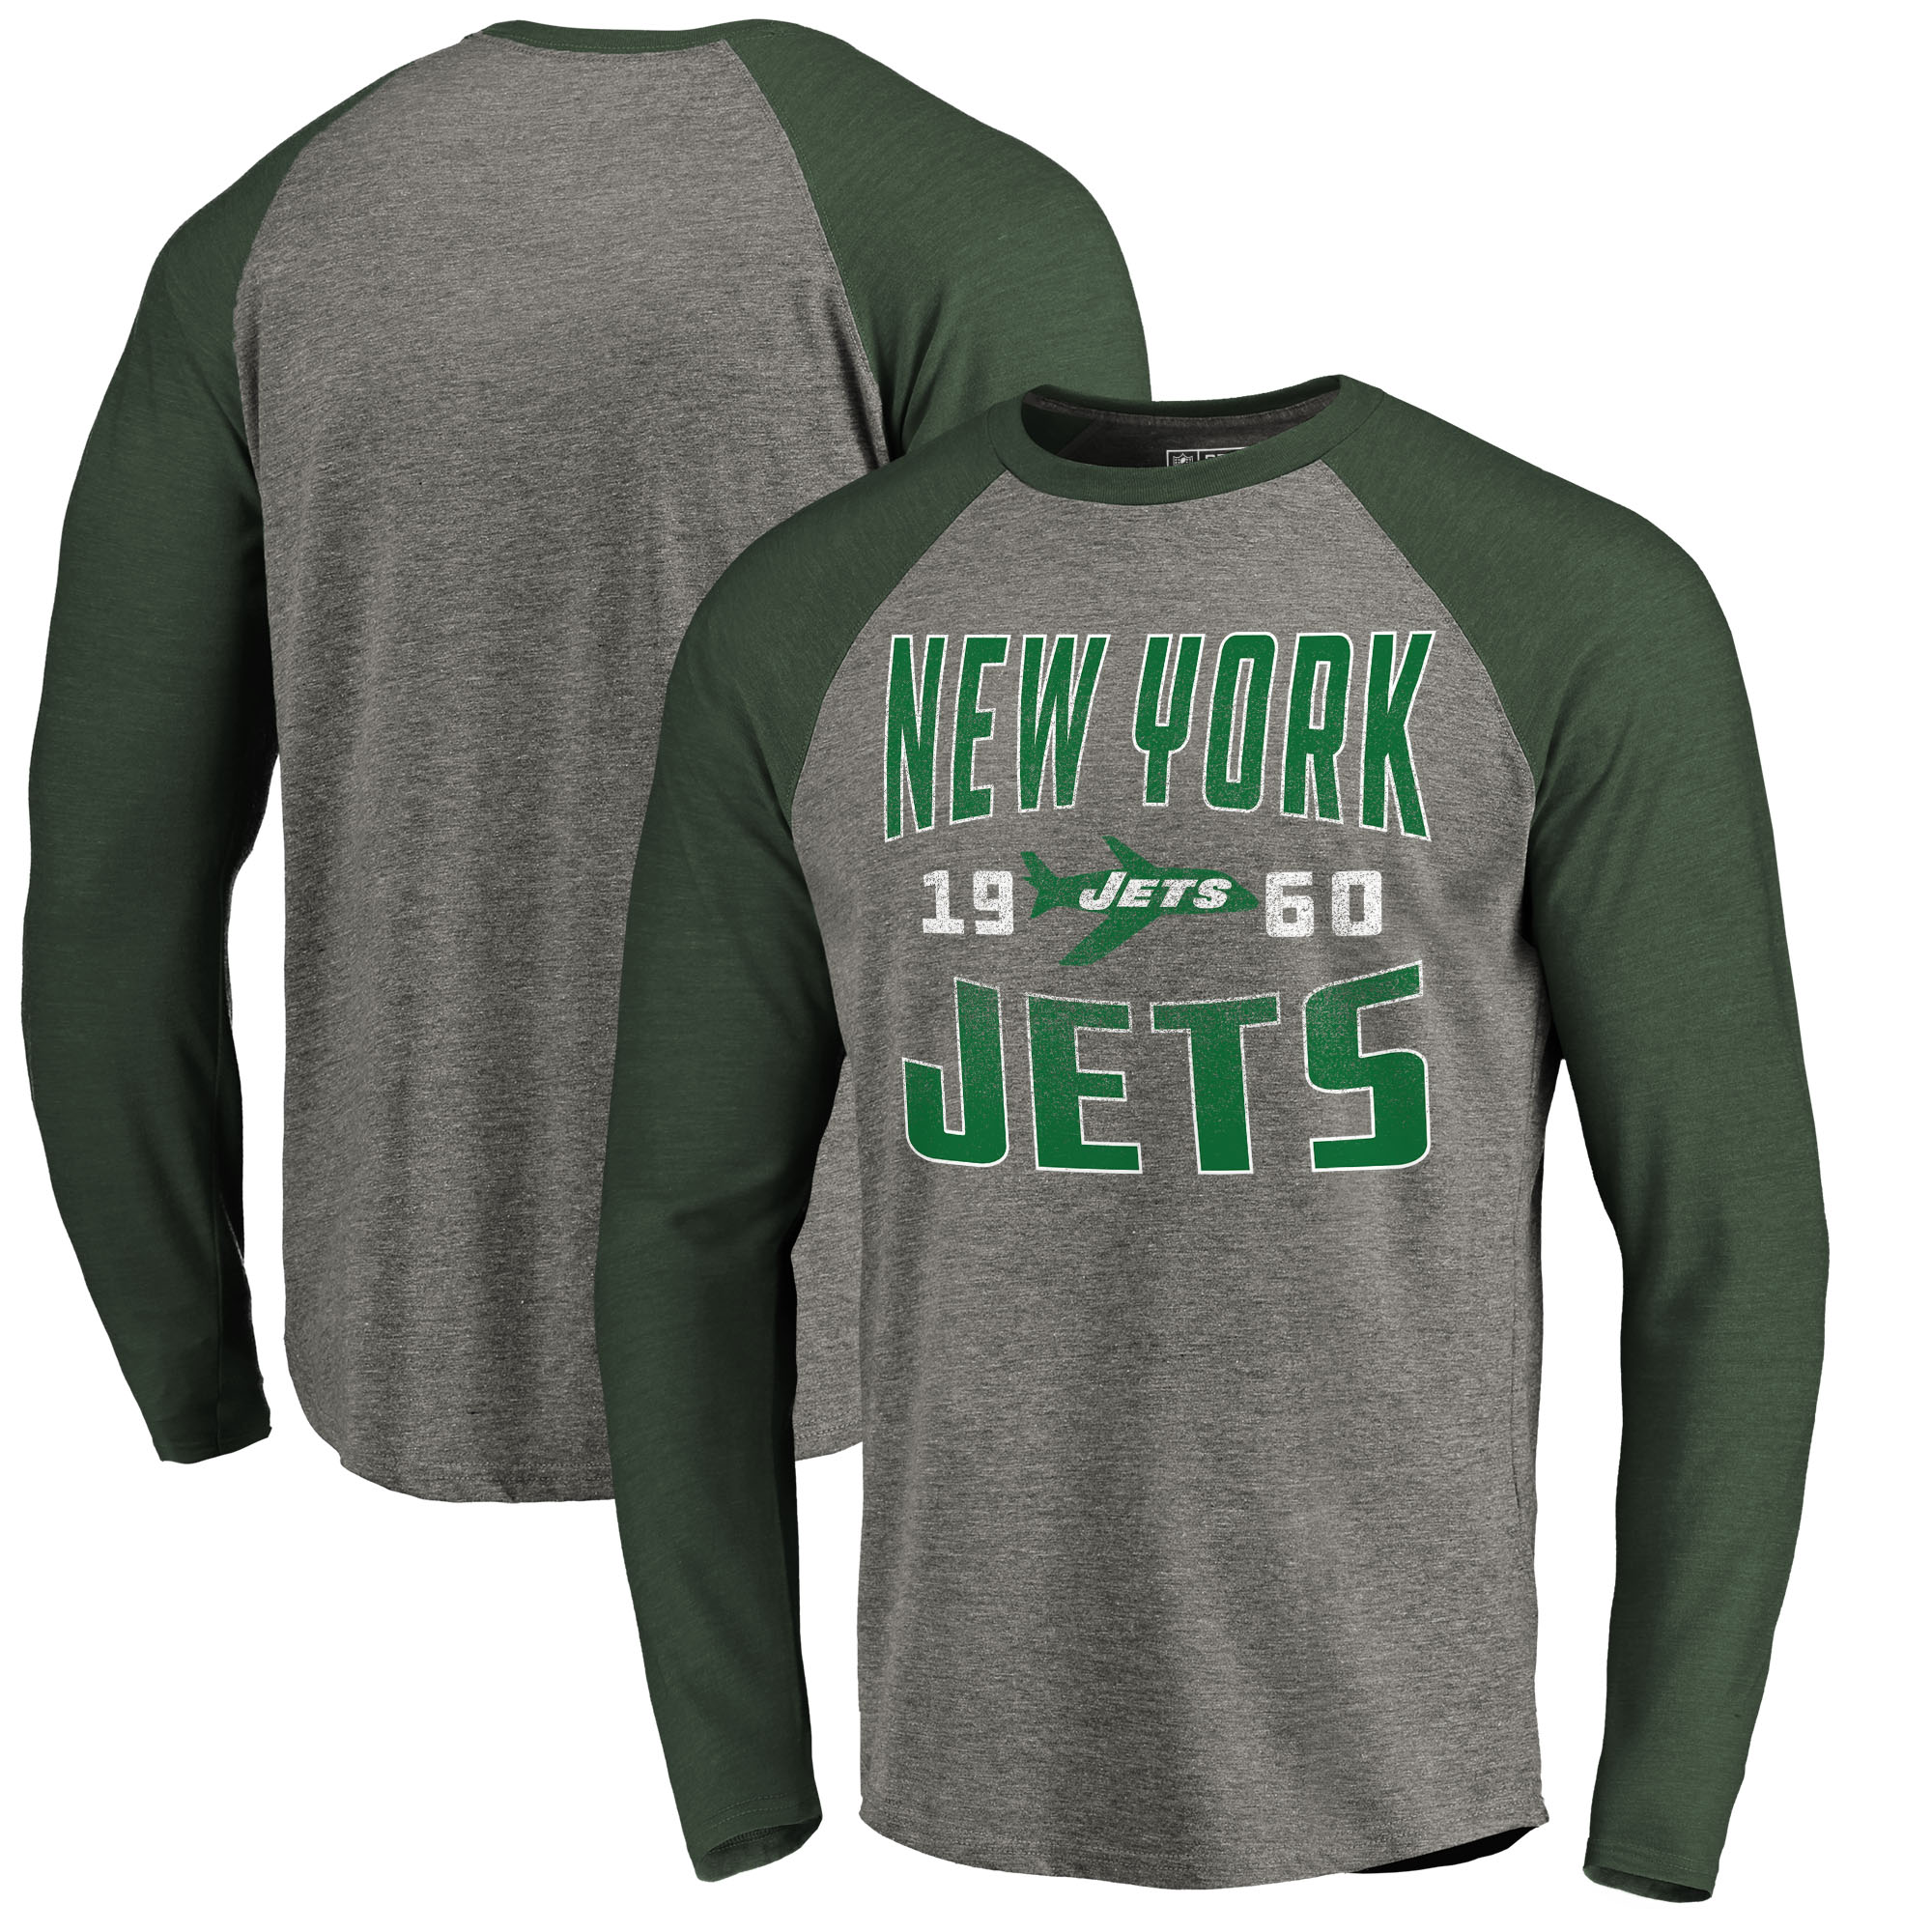 New York Jets NFL Pro Line by Fanatics Branded Timeless Collection Antique Stack Long Sleeve Tri-Blend Raglan T-Shirt - Ash